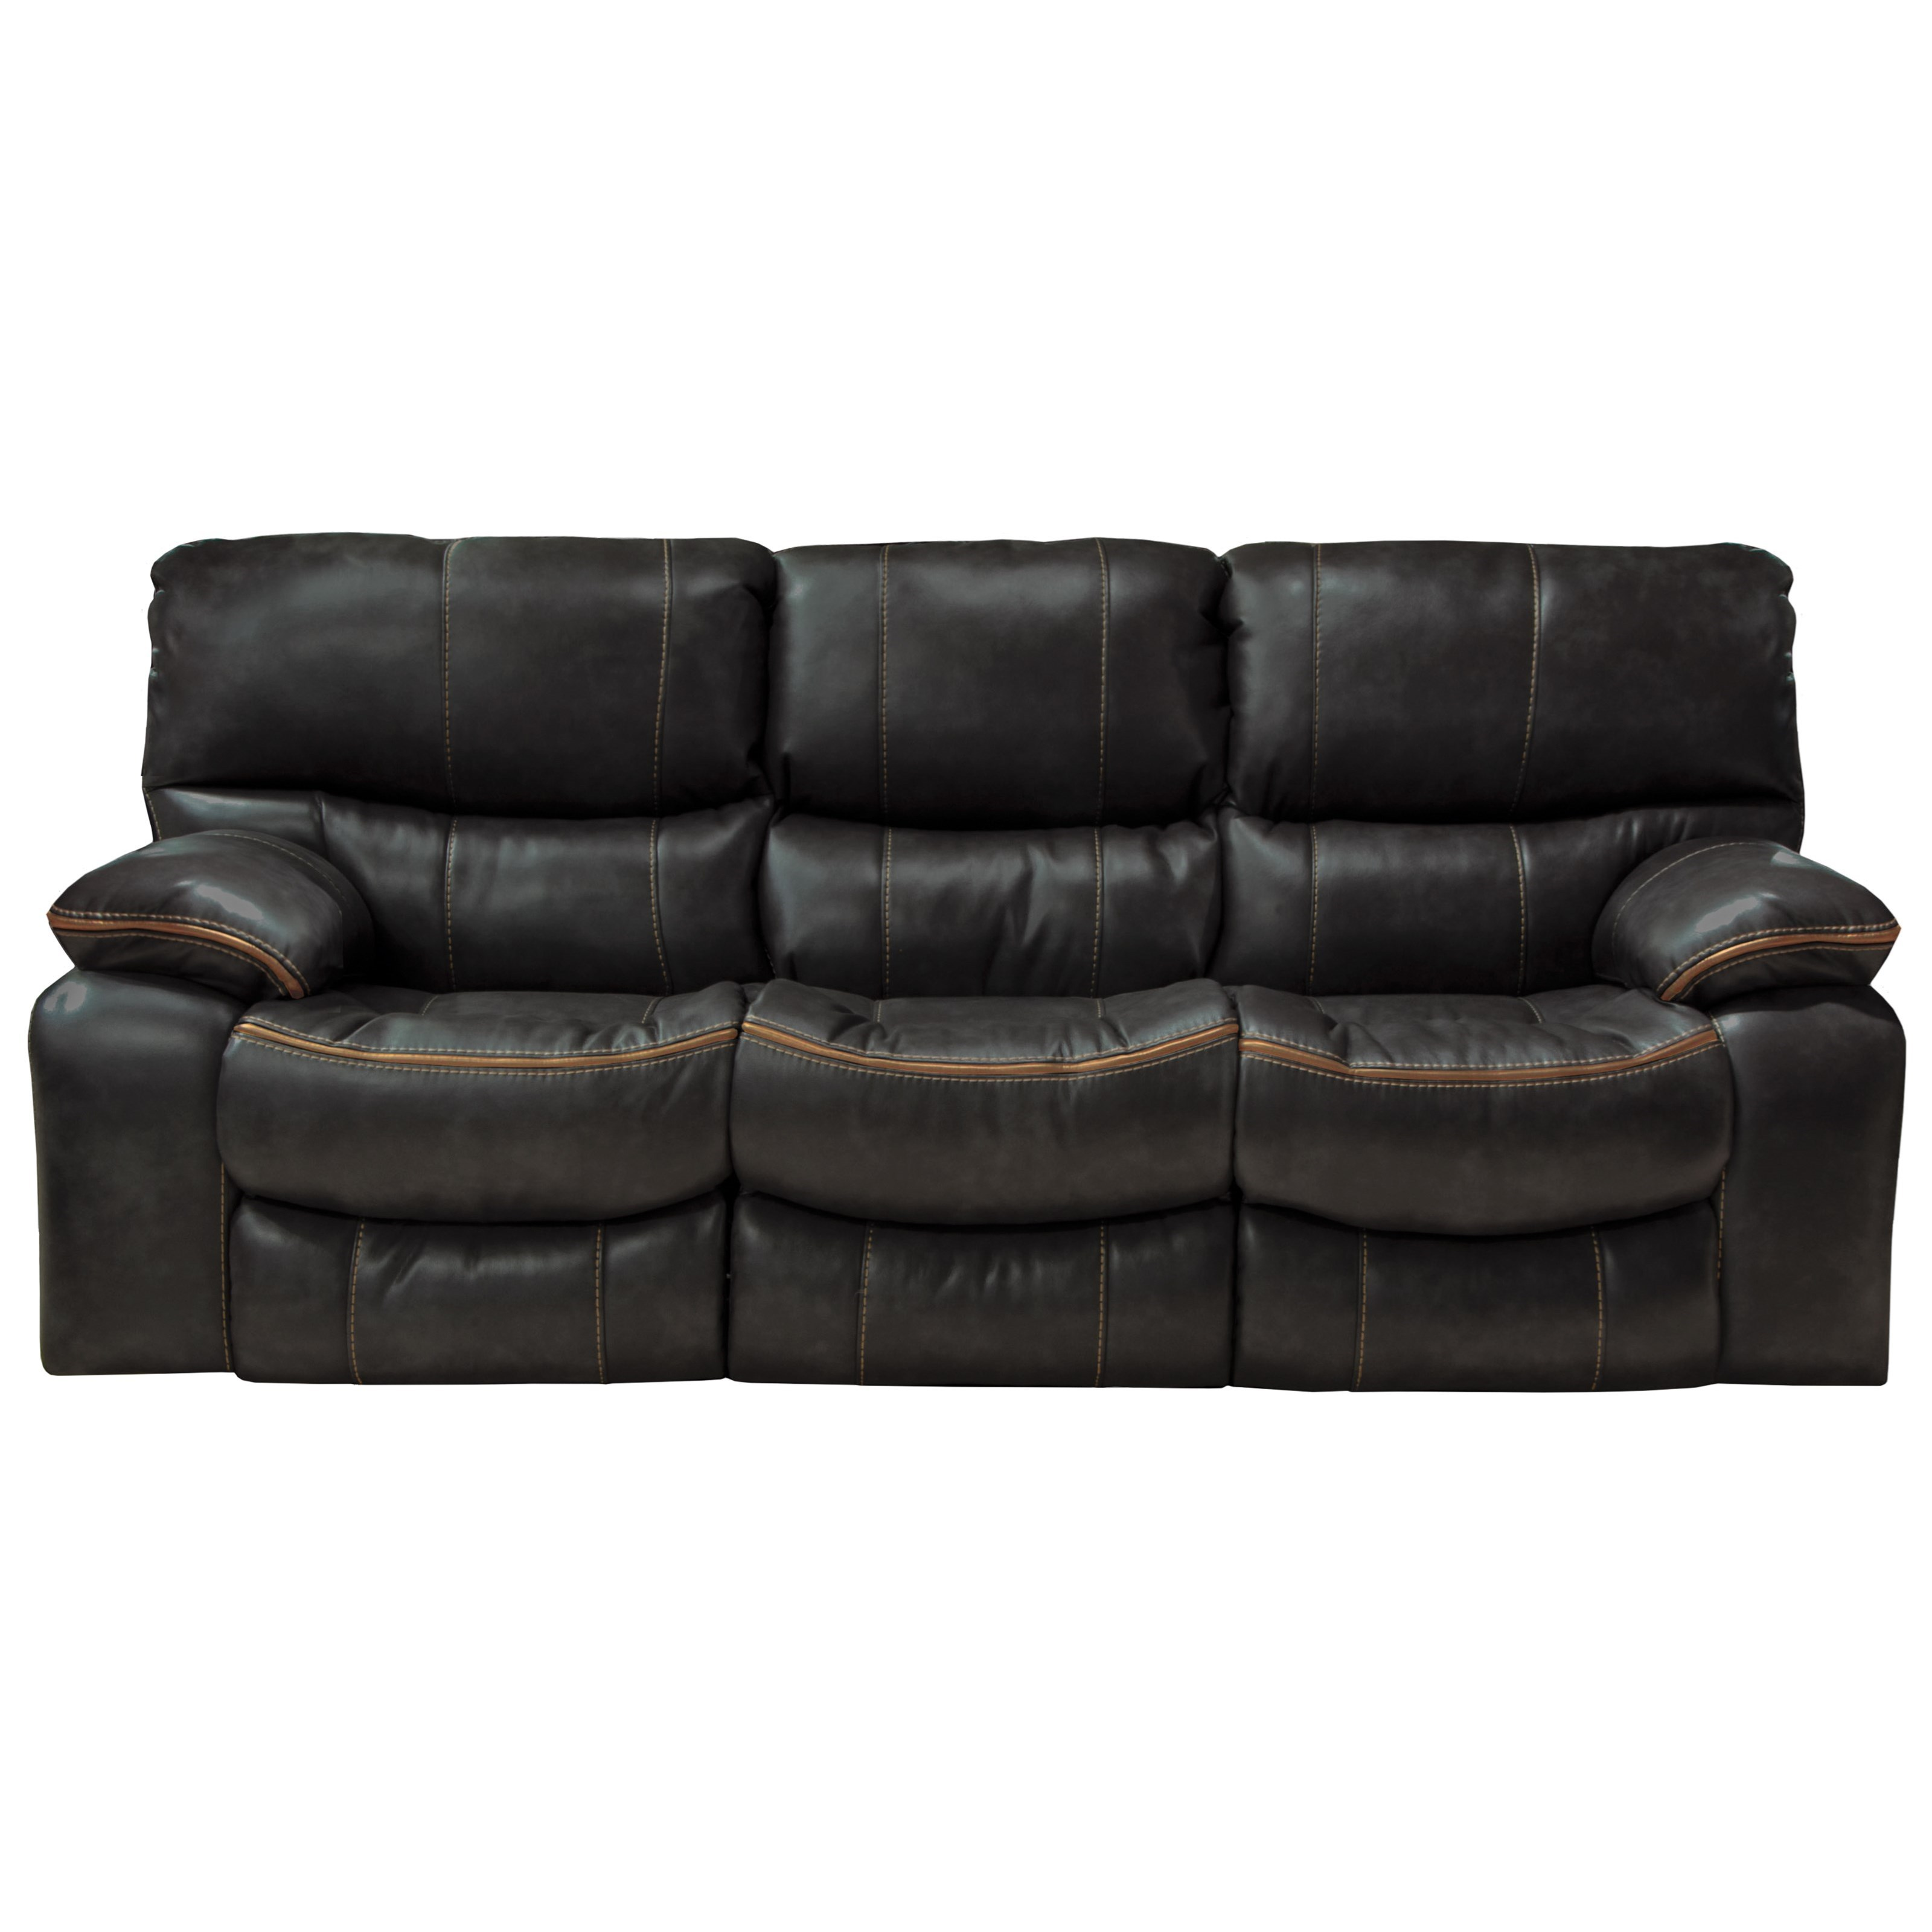 Camden Power Lay Flat Reclining Sofa by Catnapper at Northeast Factory Direct